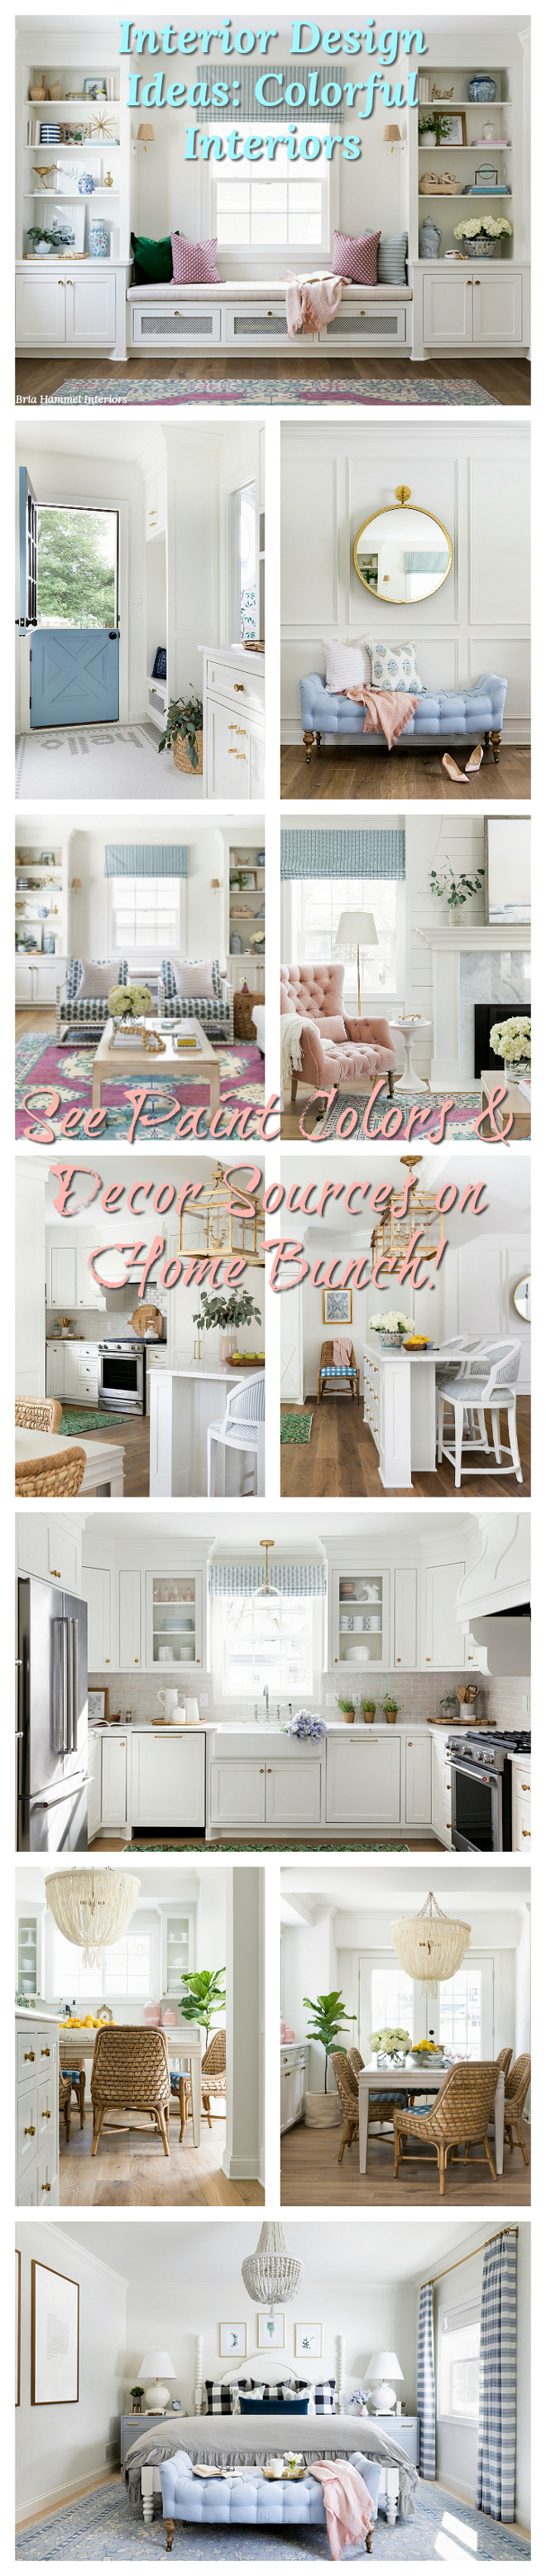 Colorful Interiors with pastel colors Colorful Interiors Colorful Interiors Colorful Interiors with pastel colors Colorful Interiors Colorful Interiors #ColorfulInteriors #interiorpastelcolors #ColorfulInterior